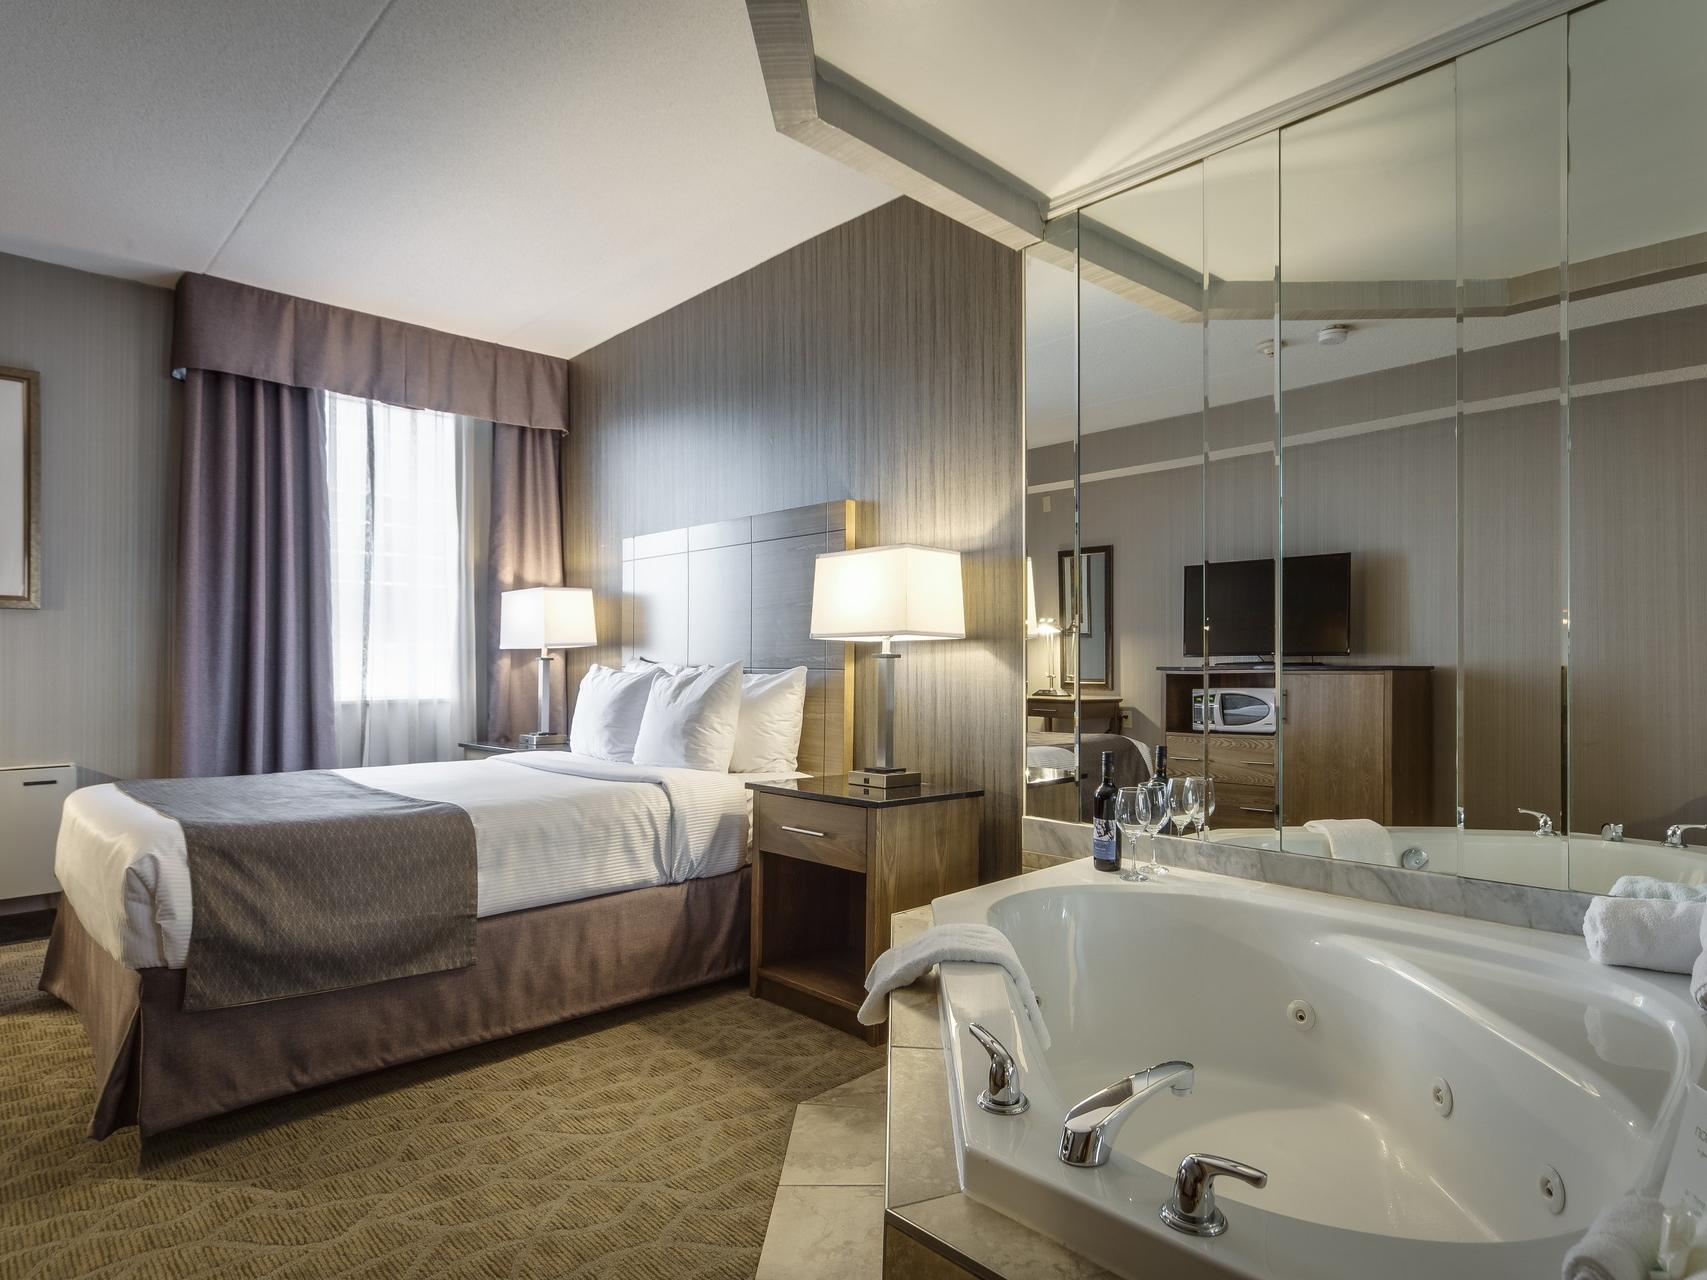 Double bed with jacuzzi - Monte Carlo Inn Airport Suites